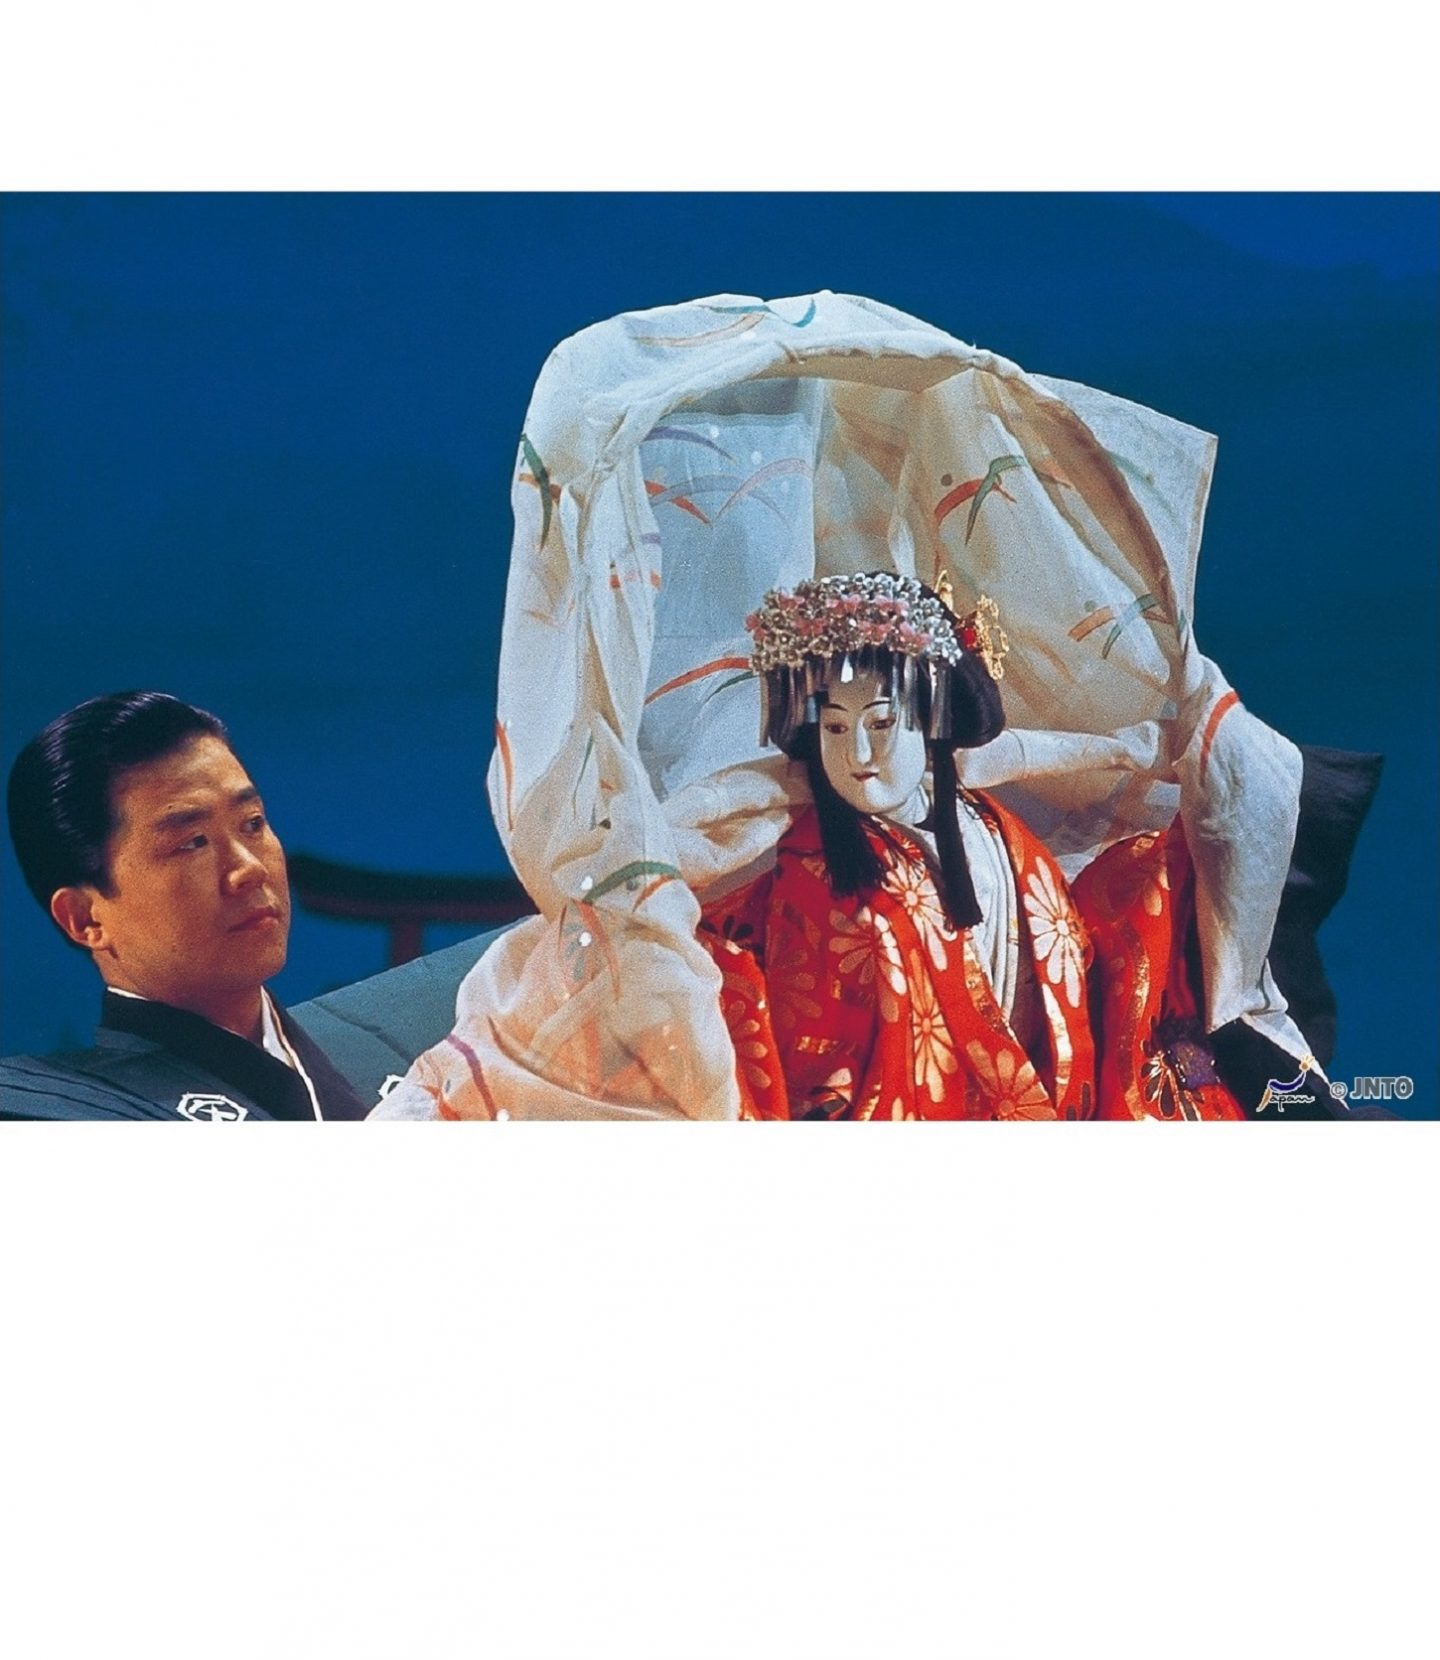 Bunraku traditionelles puppentheater japandigest for Traditionelles japan